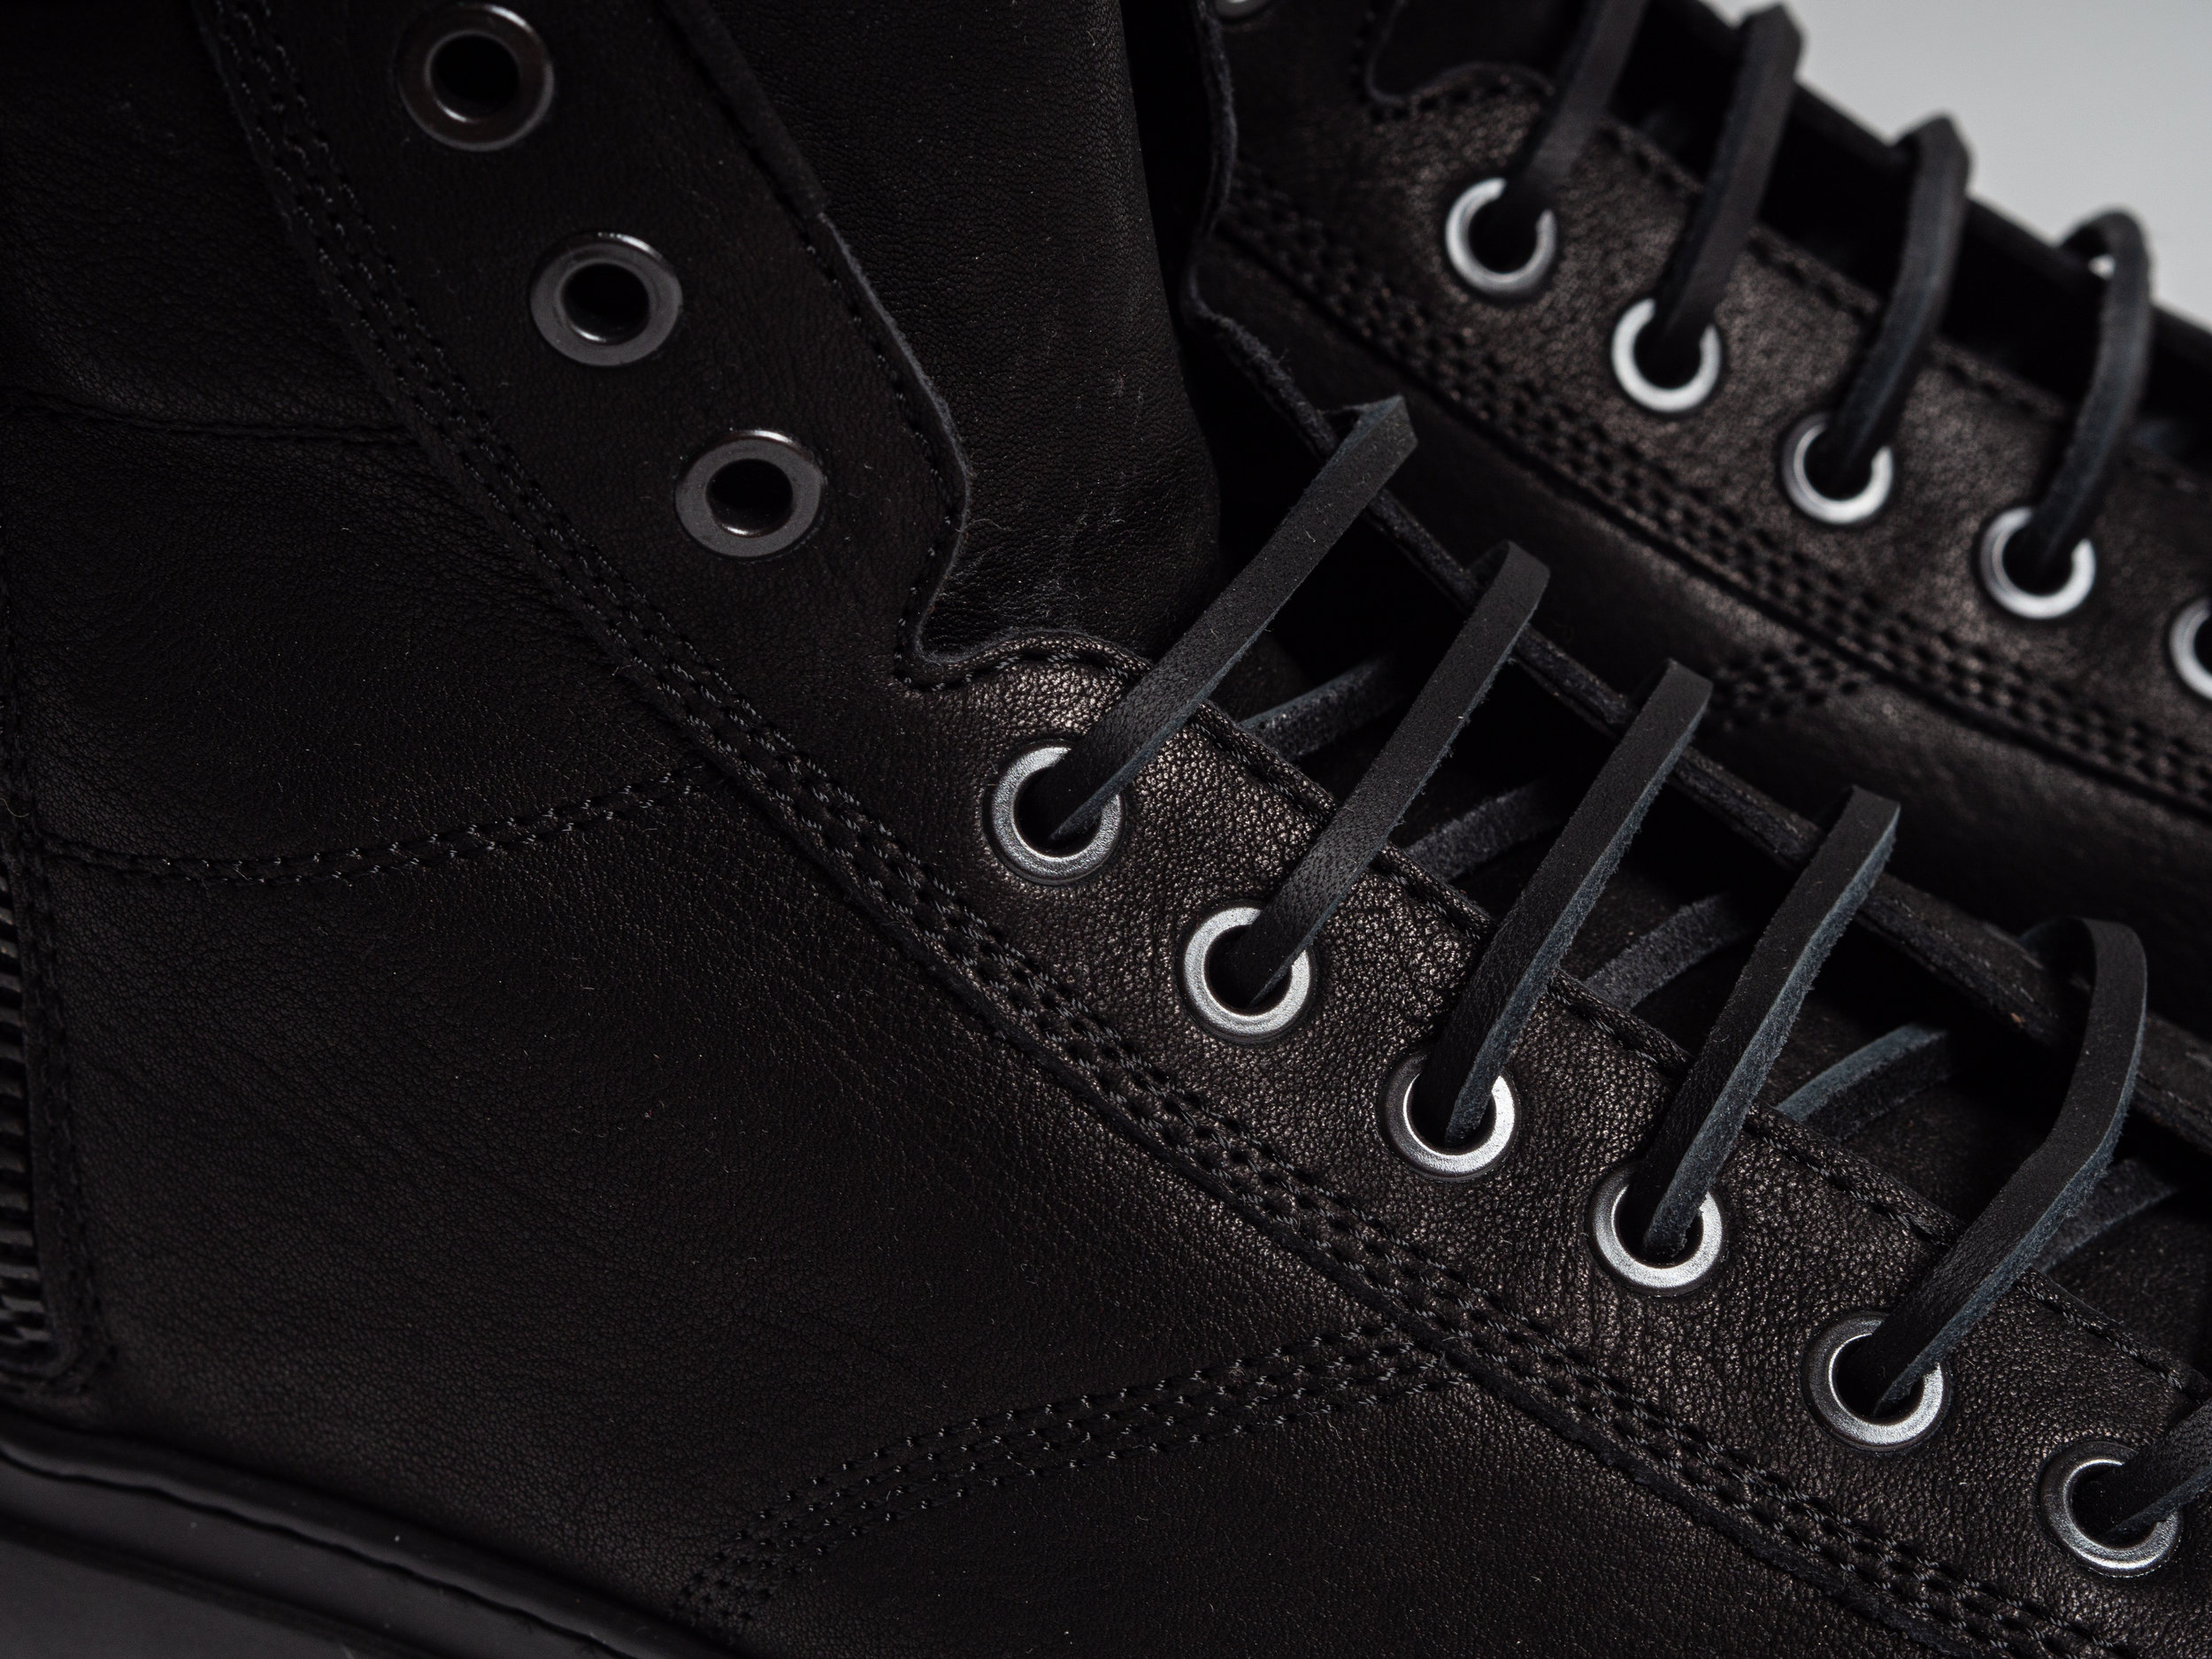 """Wings + Horns Classic Hi Sneaker - The Classic Hi is leather lined, with a cushioned leather footbed, and the iconic """"Serena"""" rubber sole by Margom. They are finished with raw leather laces, and a heavy duty side zipper for easy on and off. The Classic Hi is made in Italy."""